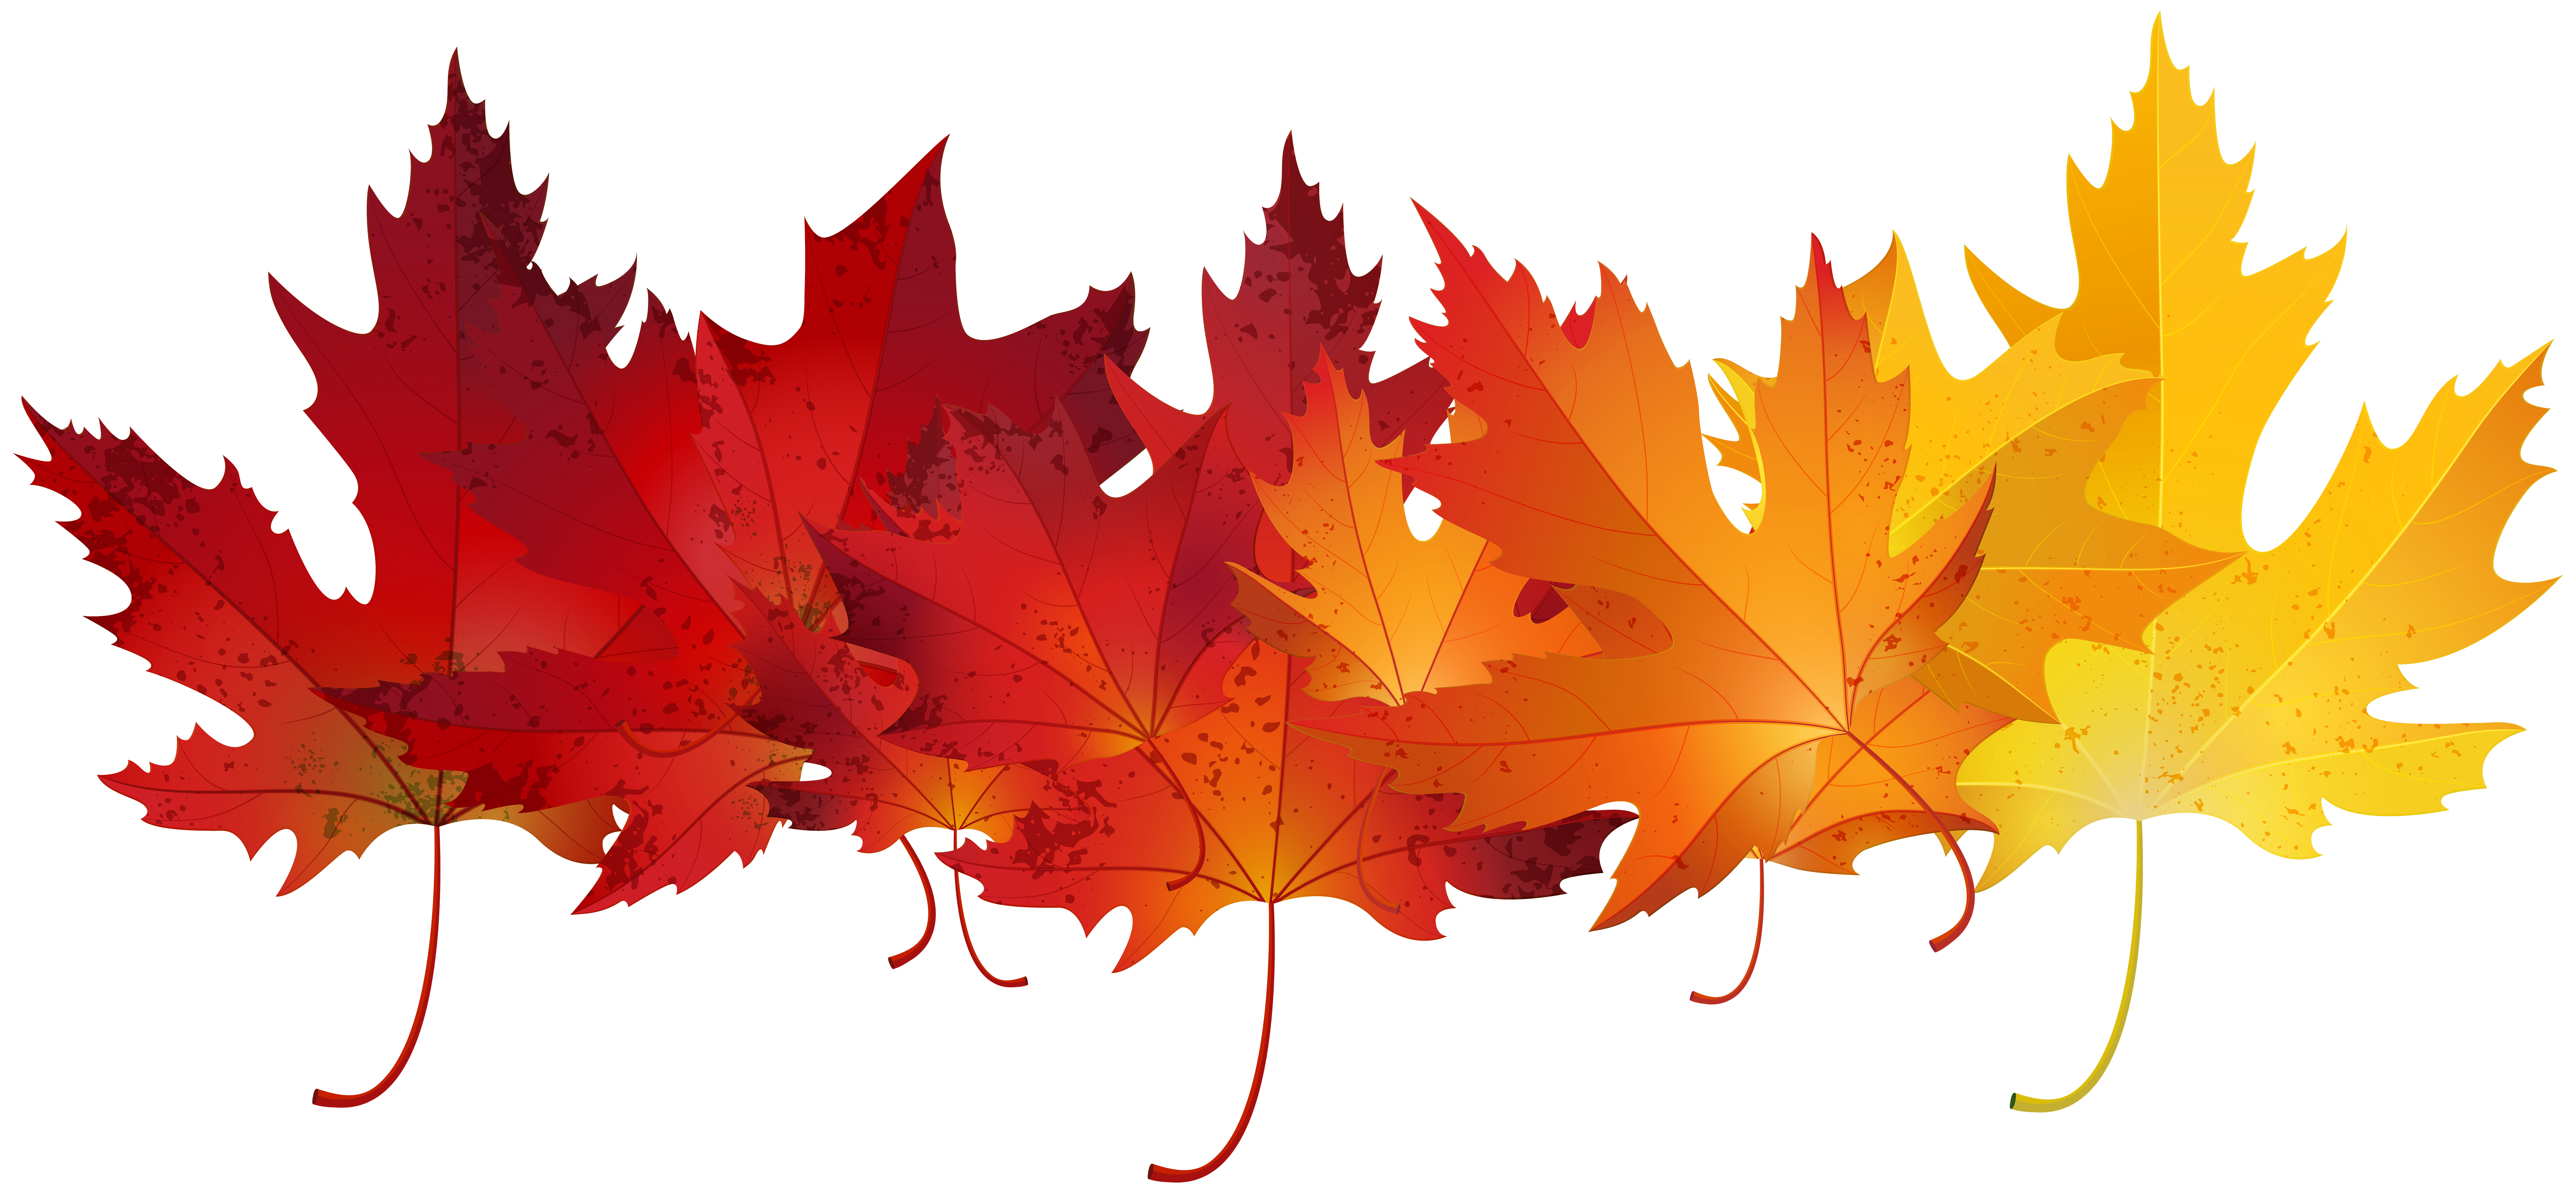 clip royalty free download Autumn clip art image. Fall transparent red leaves